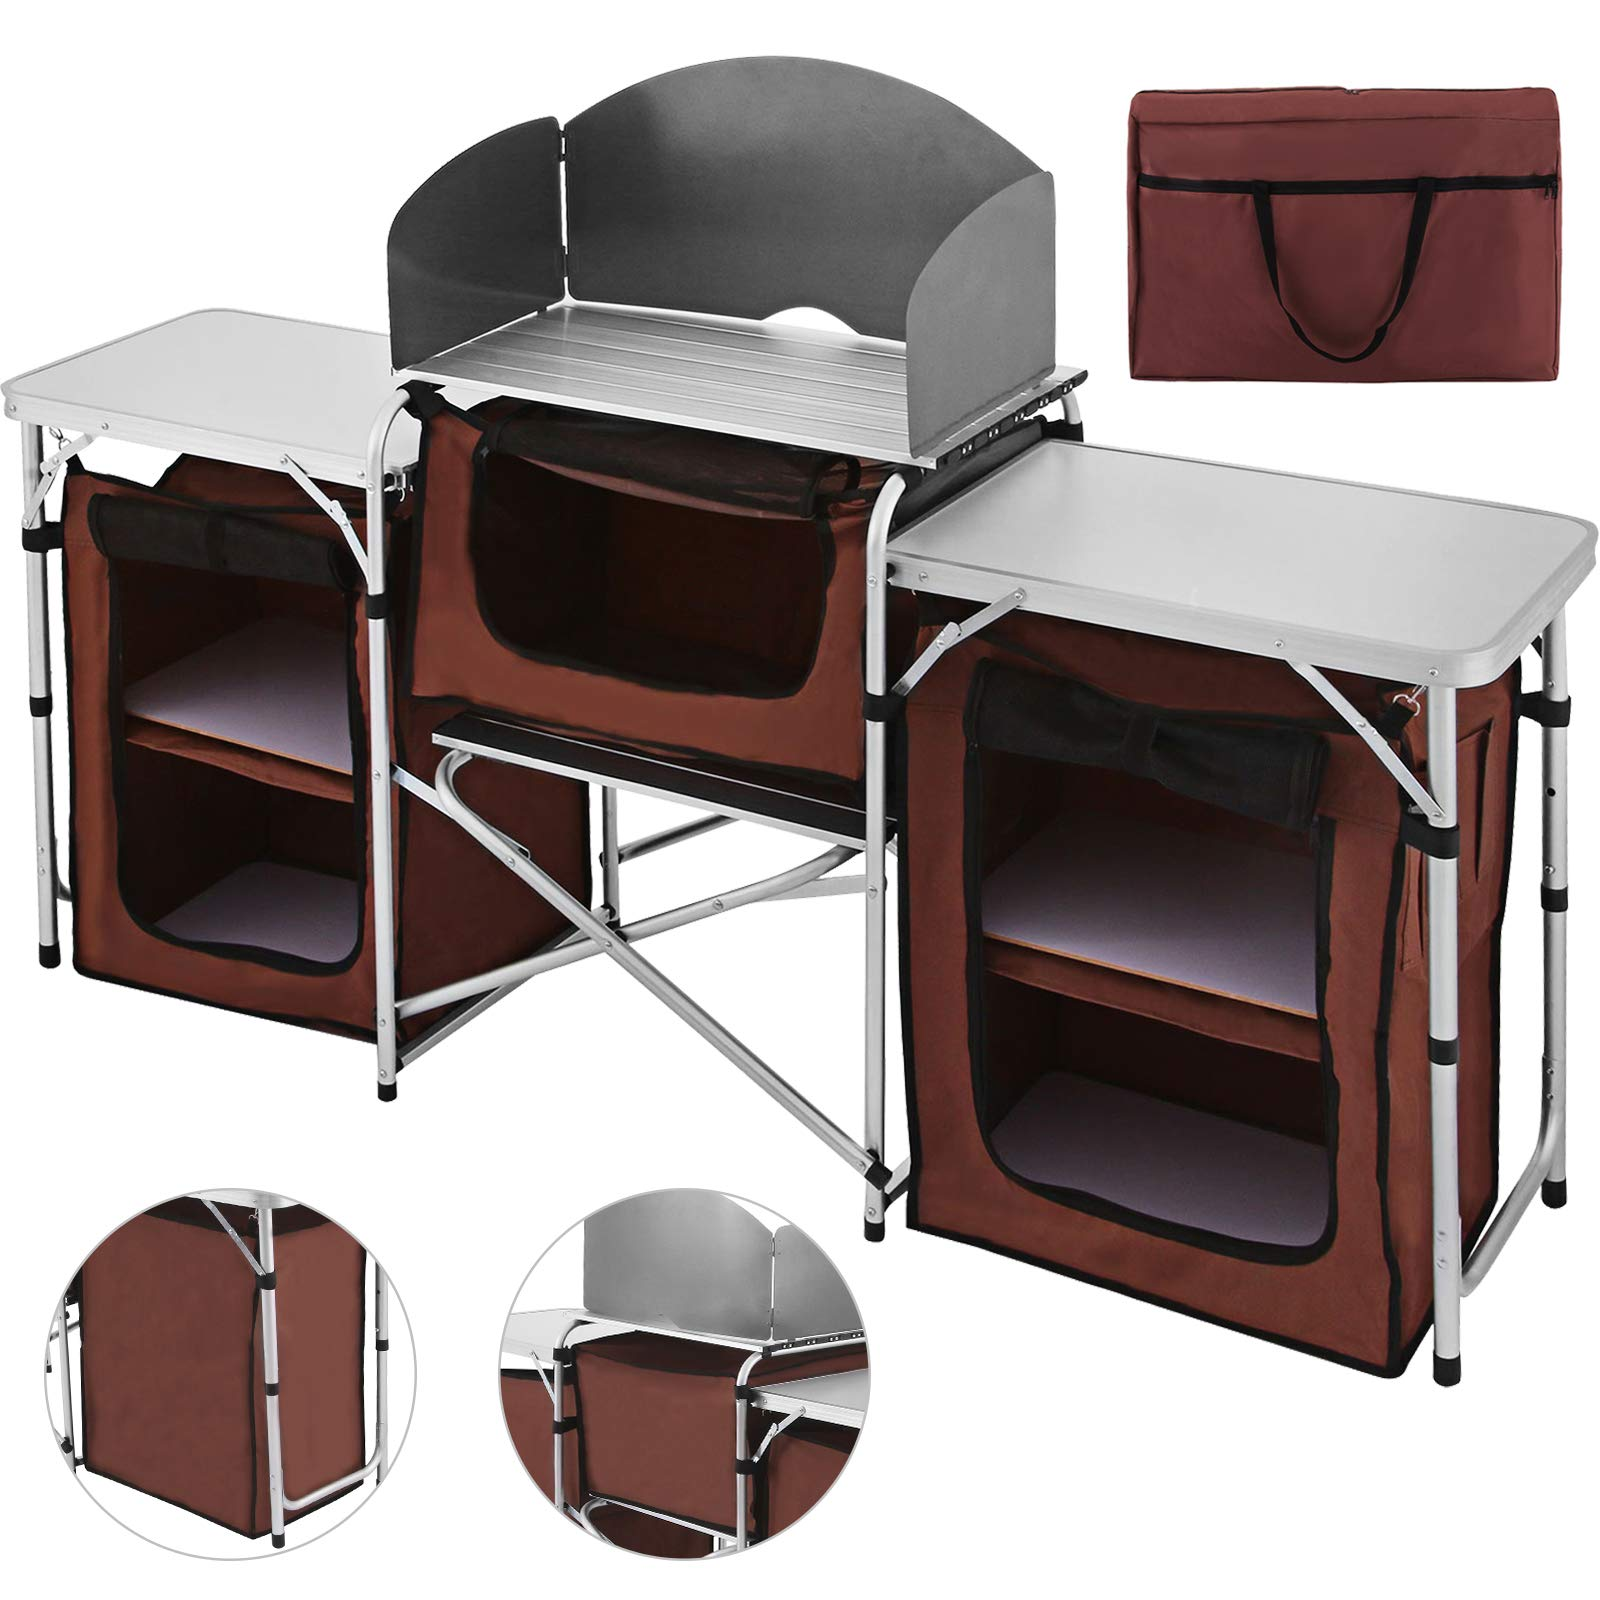 Happybuy Portable Camping Kitchen Table Multifunctional Camping Kitchen Table Windscreen Camping Table Easy-to-Clean Cooking Table Camping Light by Happybuy